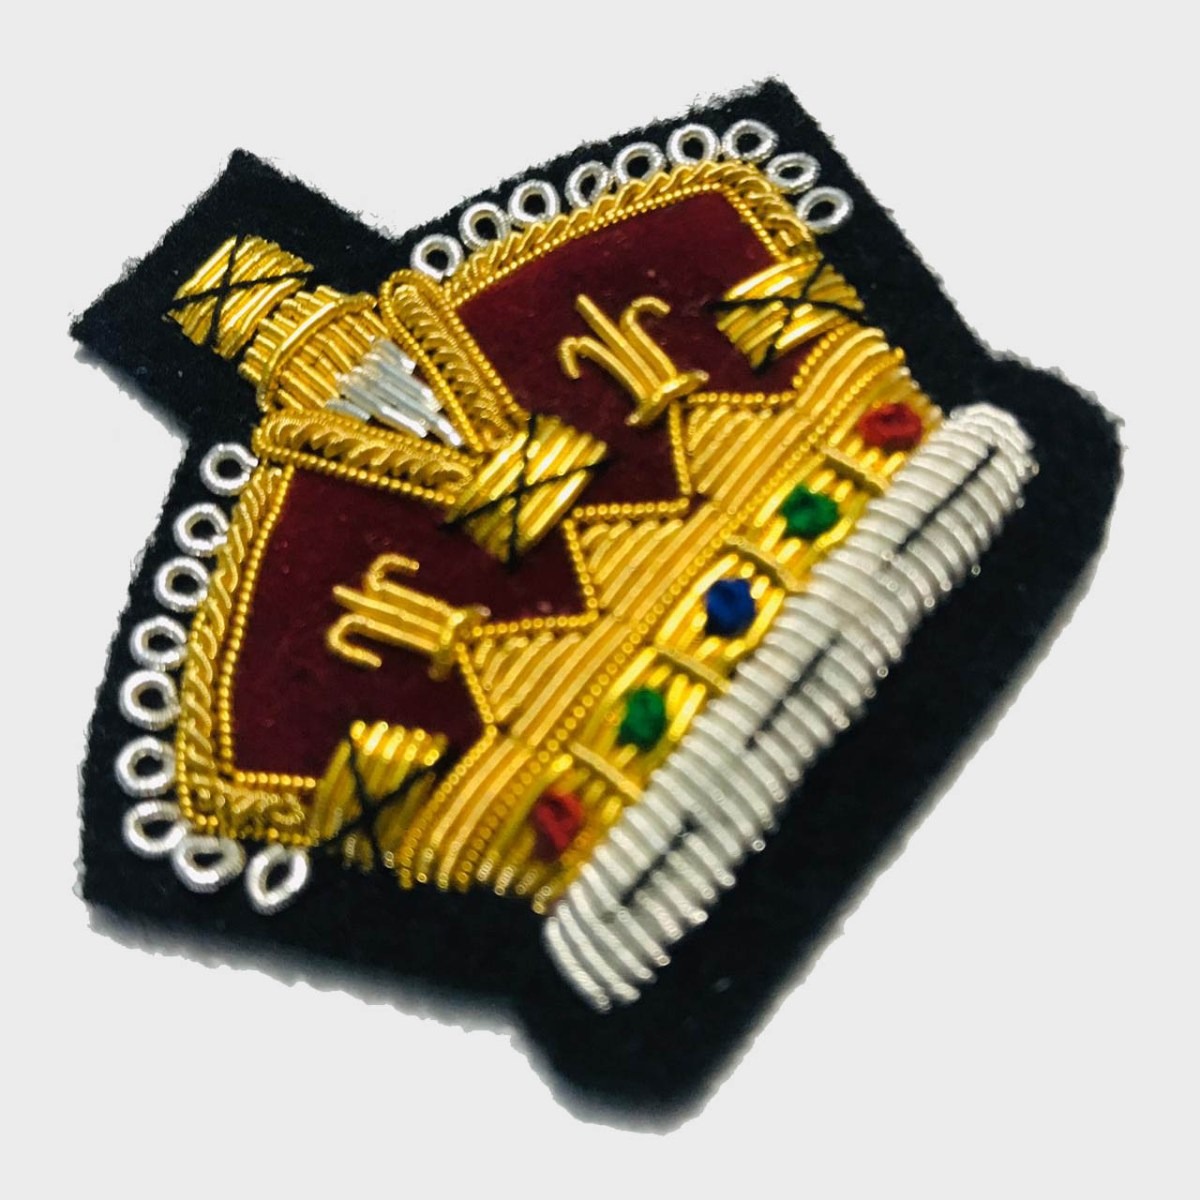 Royal Crown Bullion Embroidered Blazer Crest Patch - Fashionable 3D embroidered Royal Crown Crest Made by skilled artisans Bullion wire hand Stitched on Black colour Felt Size is approx 2x2 inches sew-on backing only 3